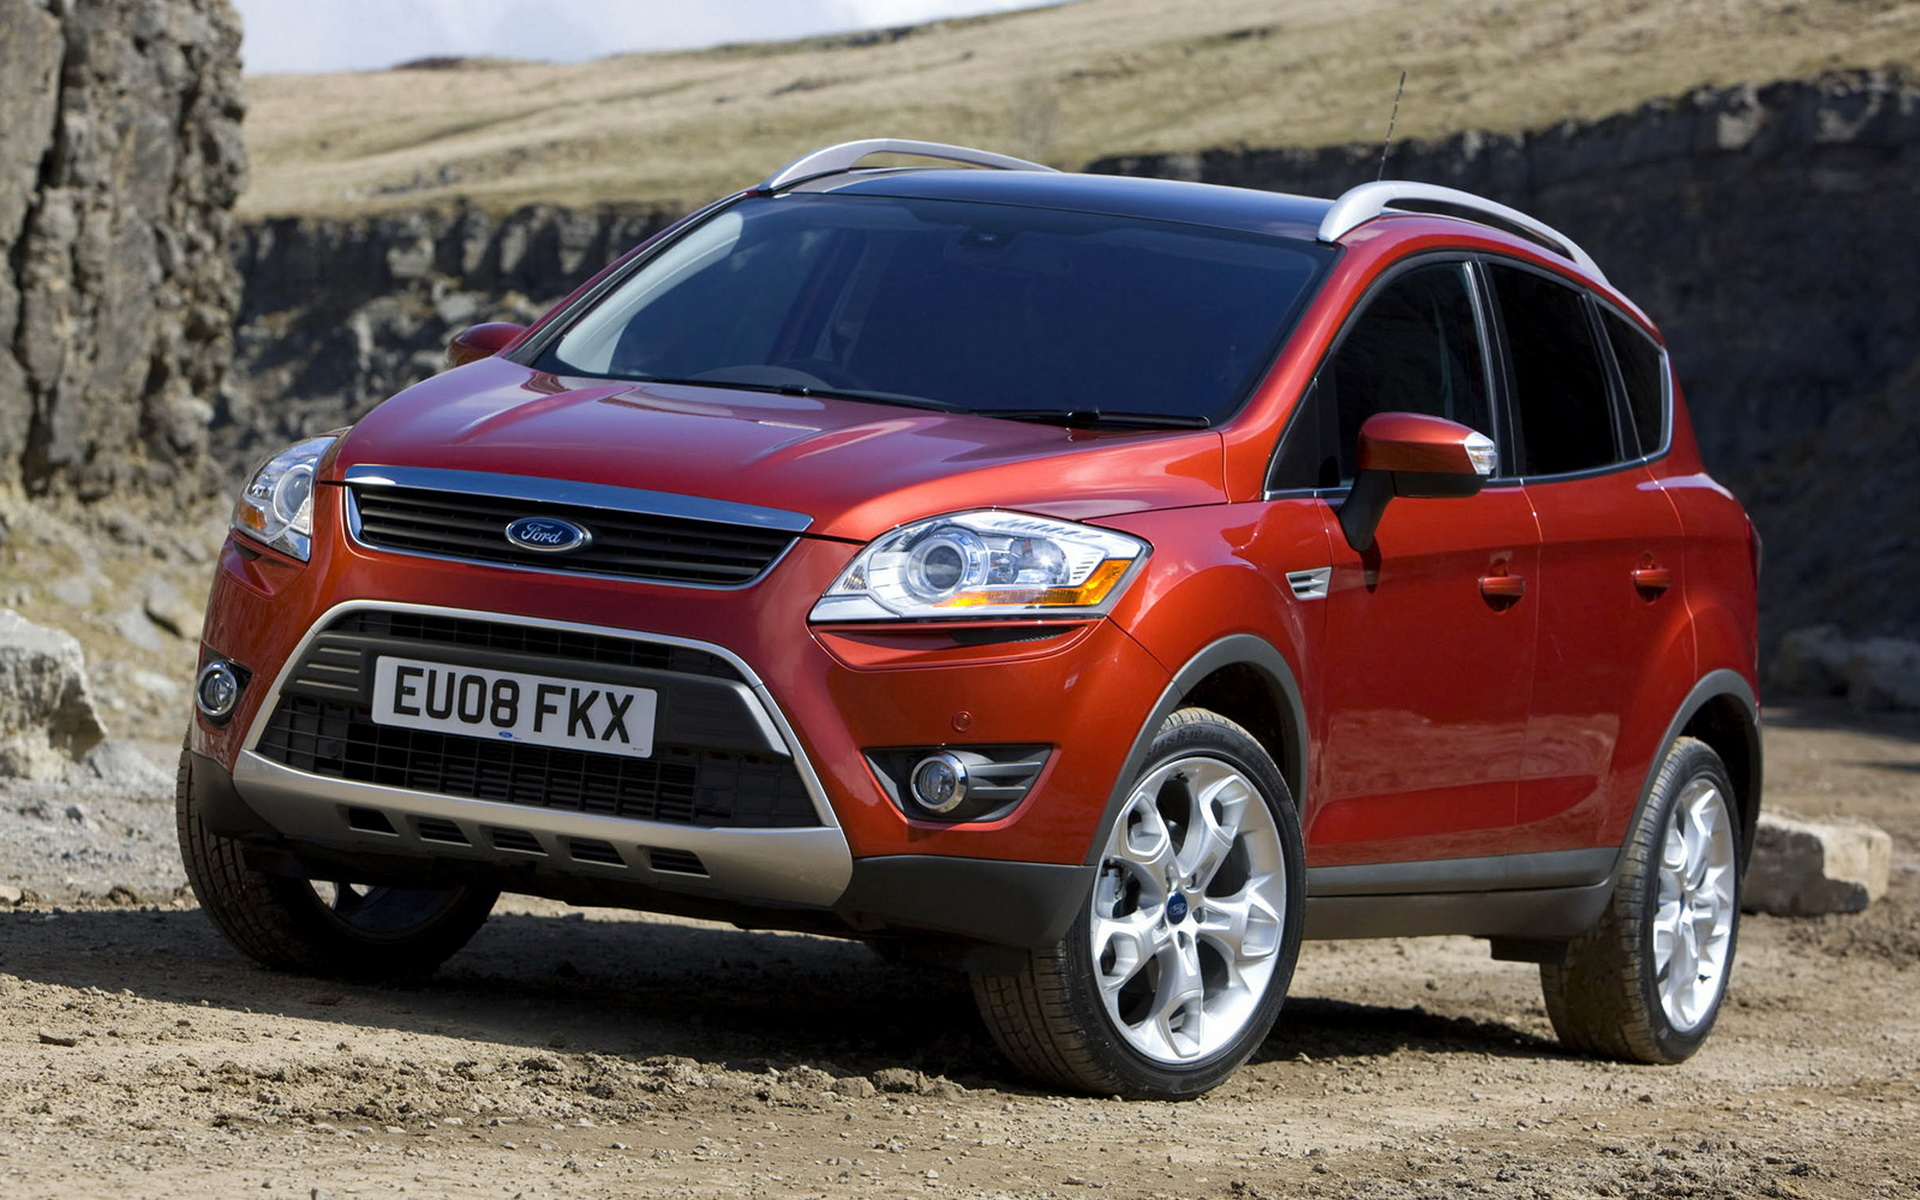 Ford Kuga wallpapers and images - wallpapers, pictures, photos